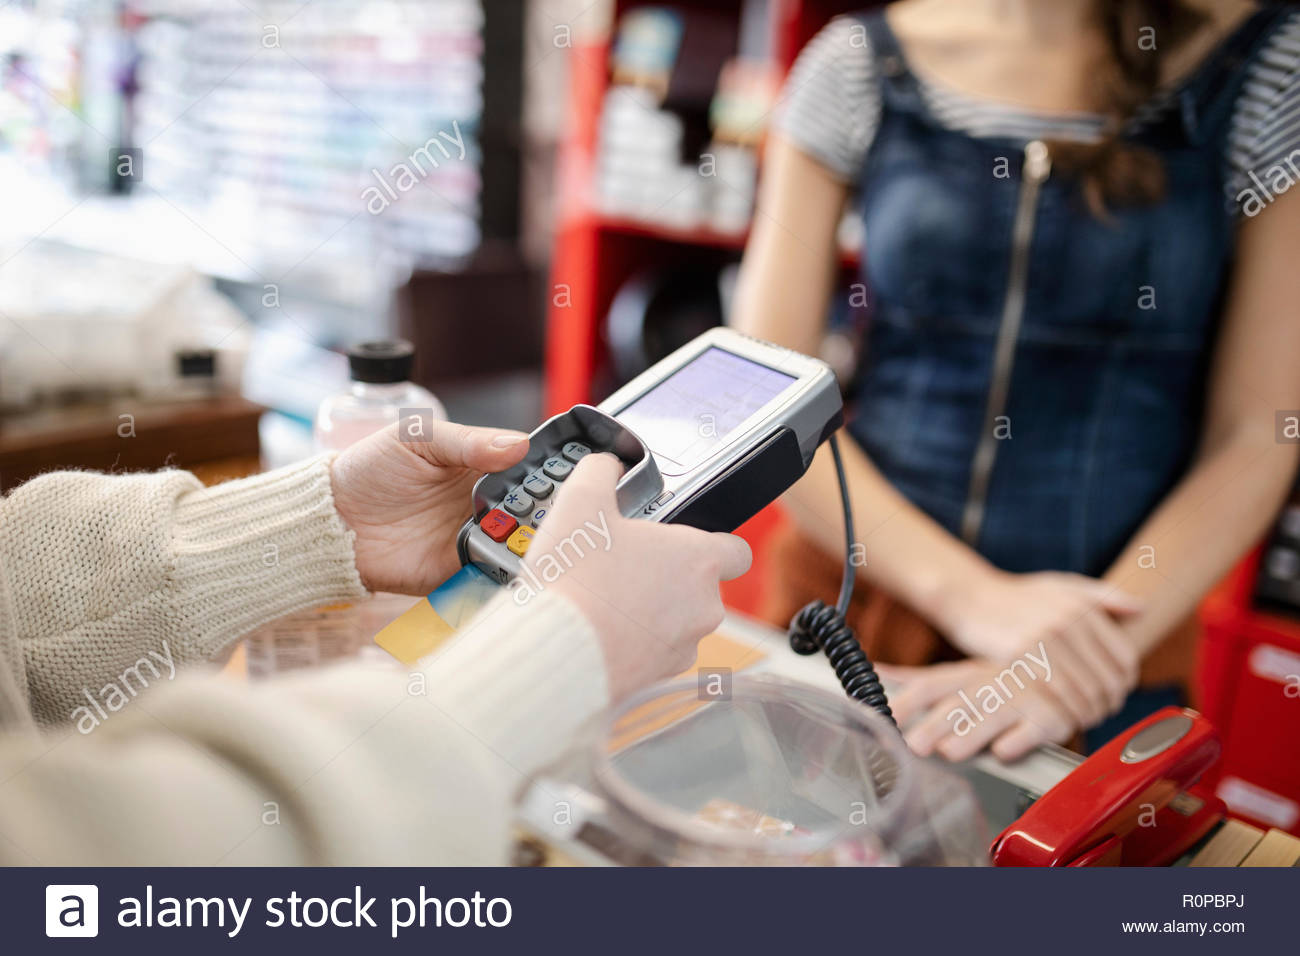 Close up female shopper paying, using credit card reader pin entry Stock Photo